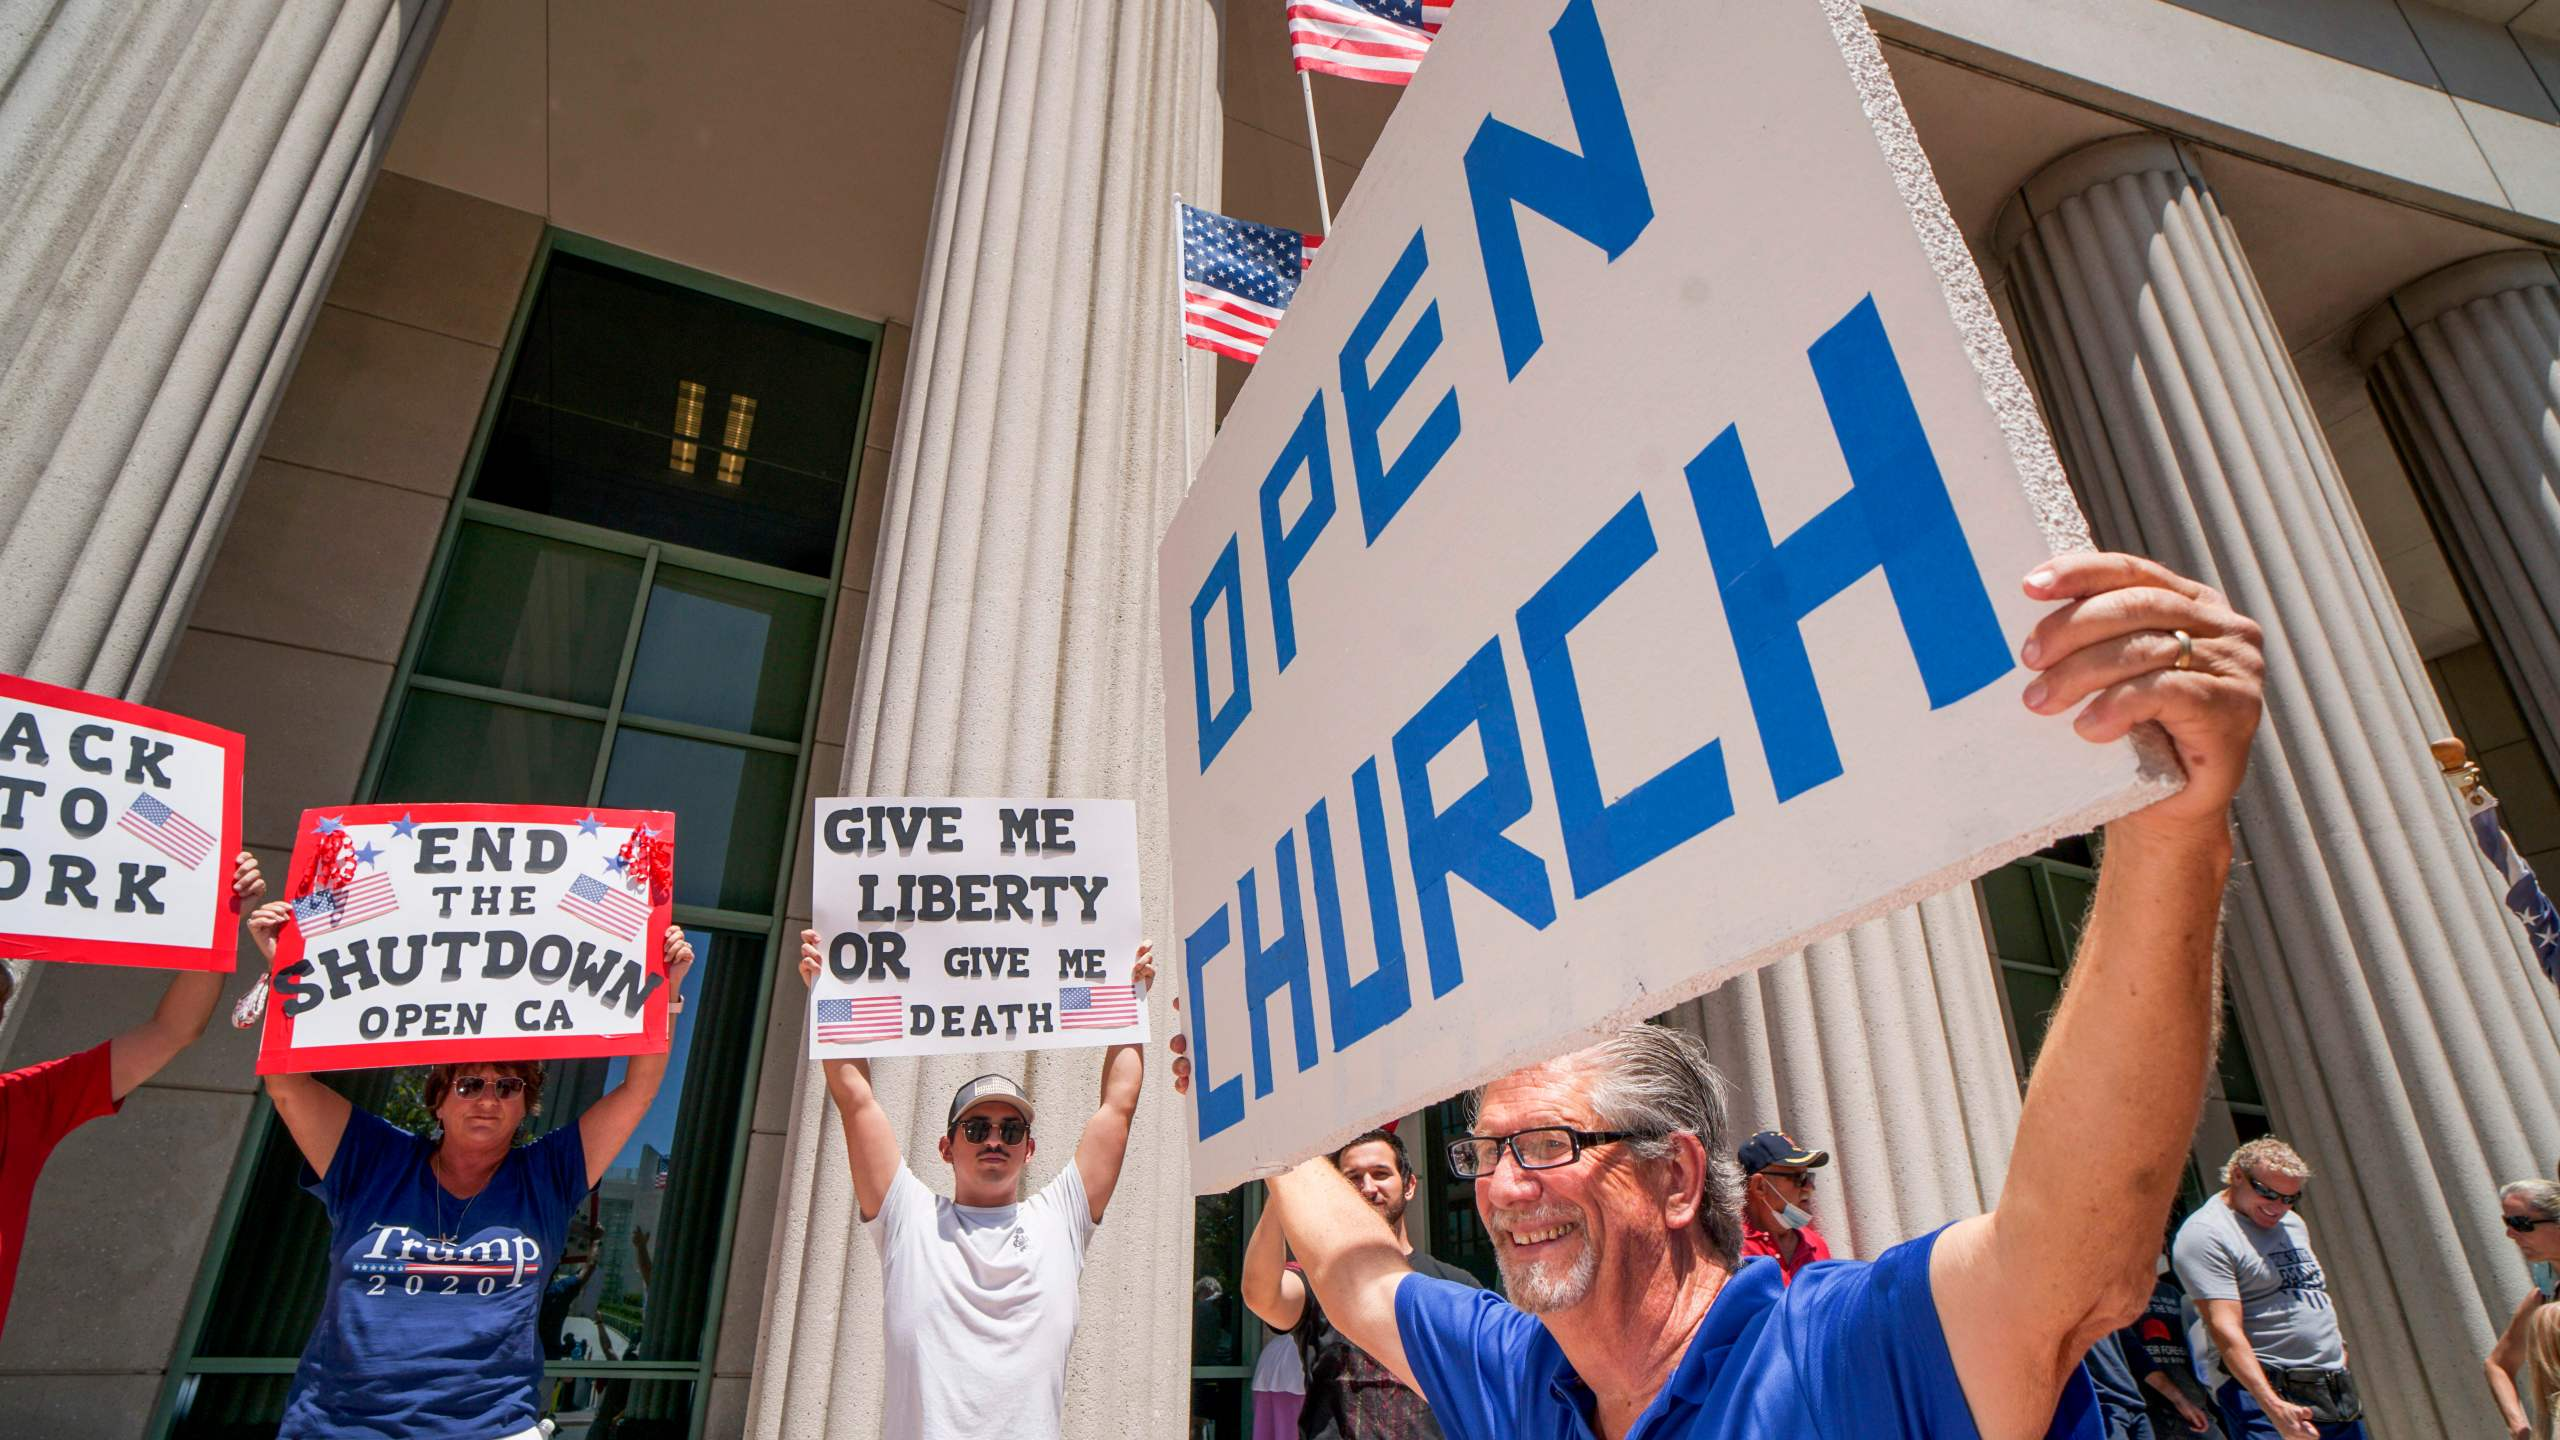 Demonstrators hold signs demanding their church to reopen during a rally to re-open California on May 1, 2020, in San Diego. (SANDY HUFFAKER/AFP via Getty Images)